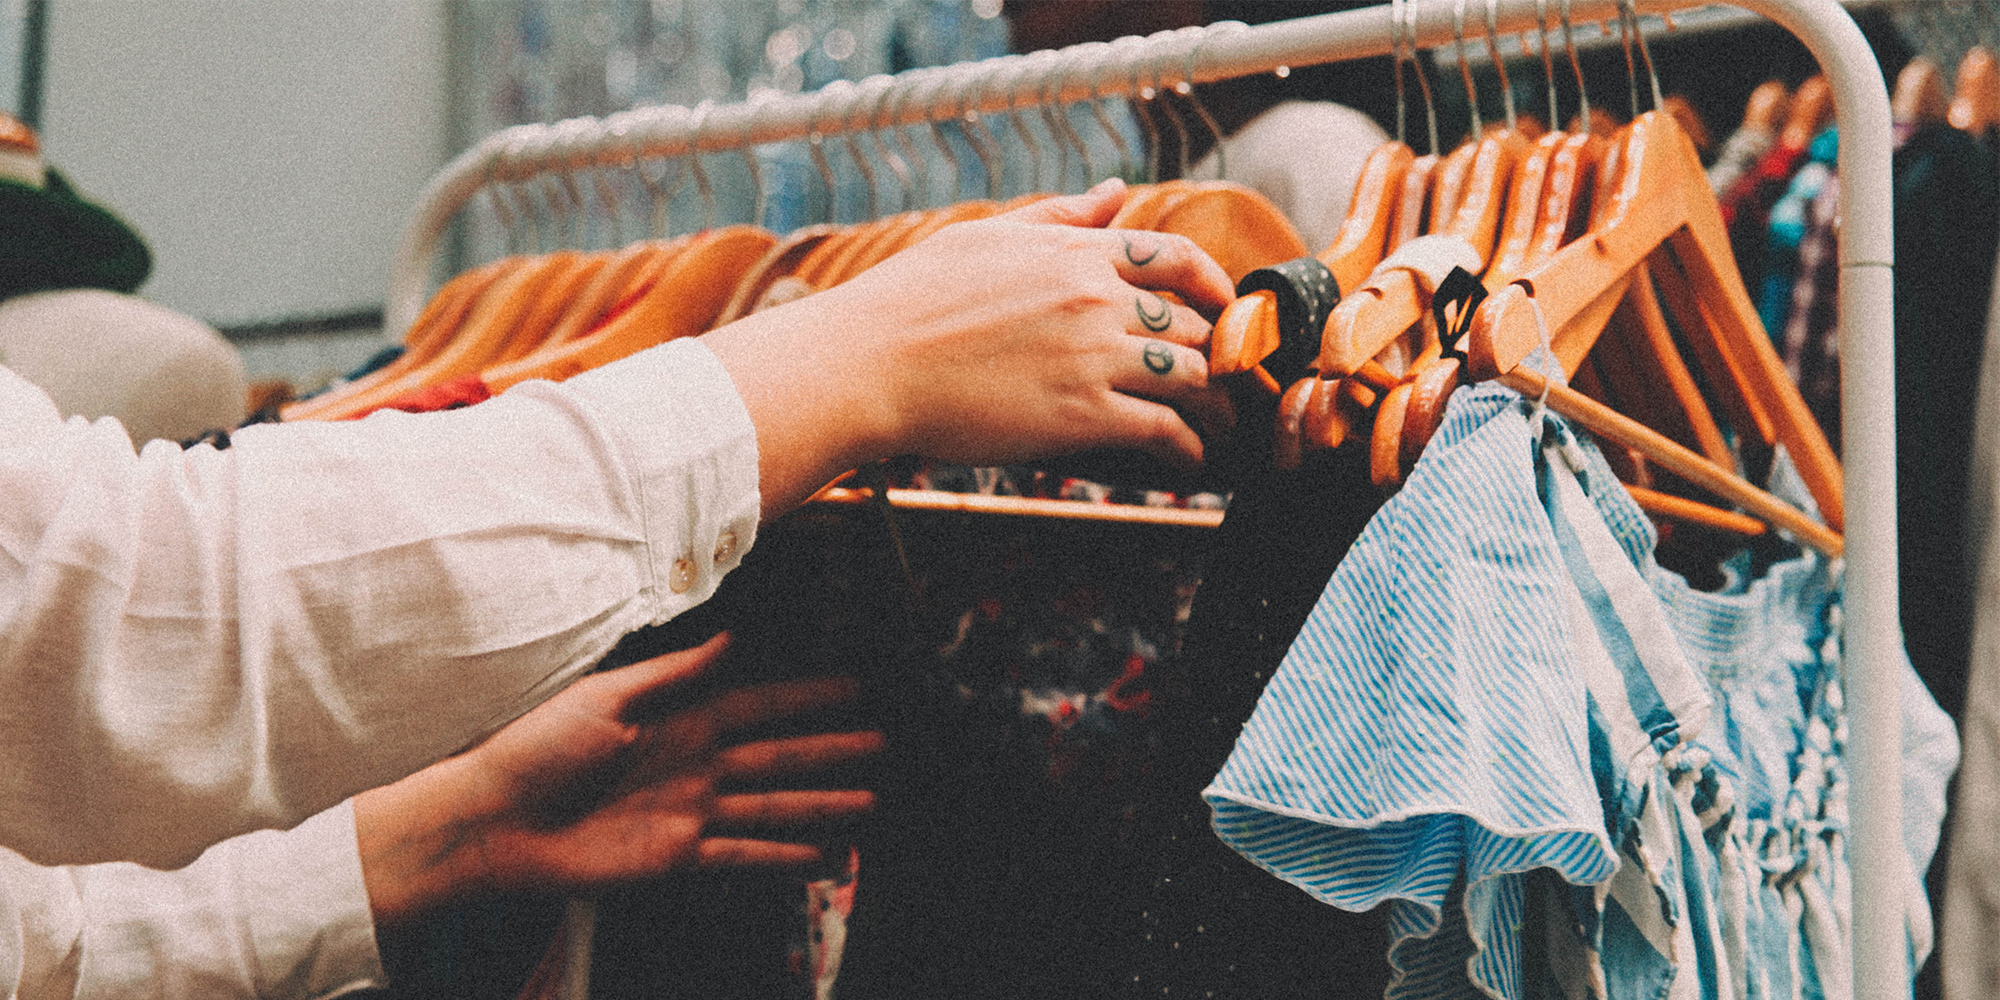 Five Ways To Give Your Clothes A Second Life